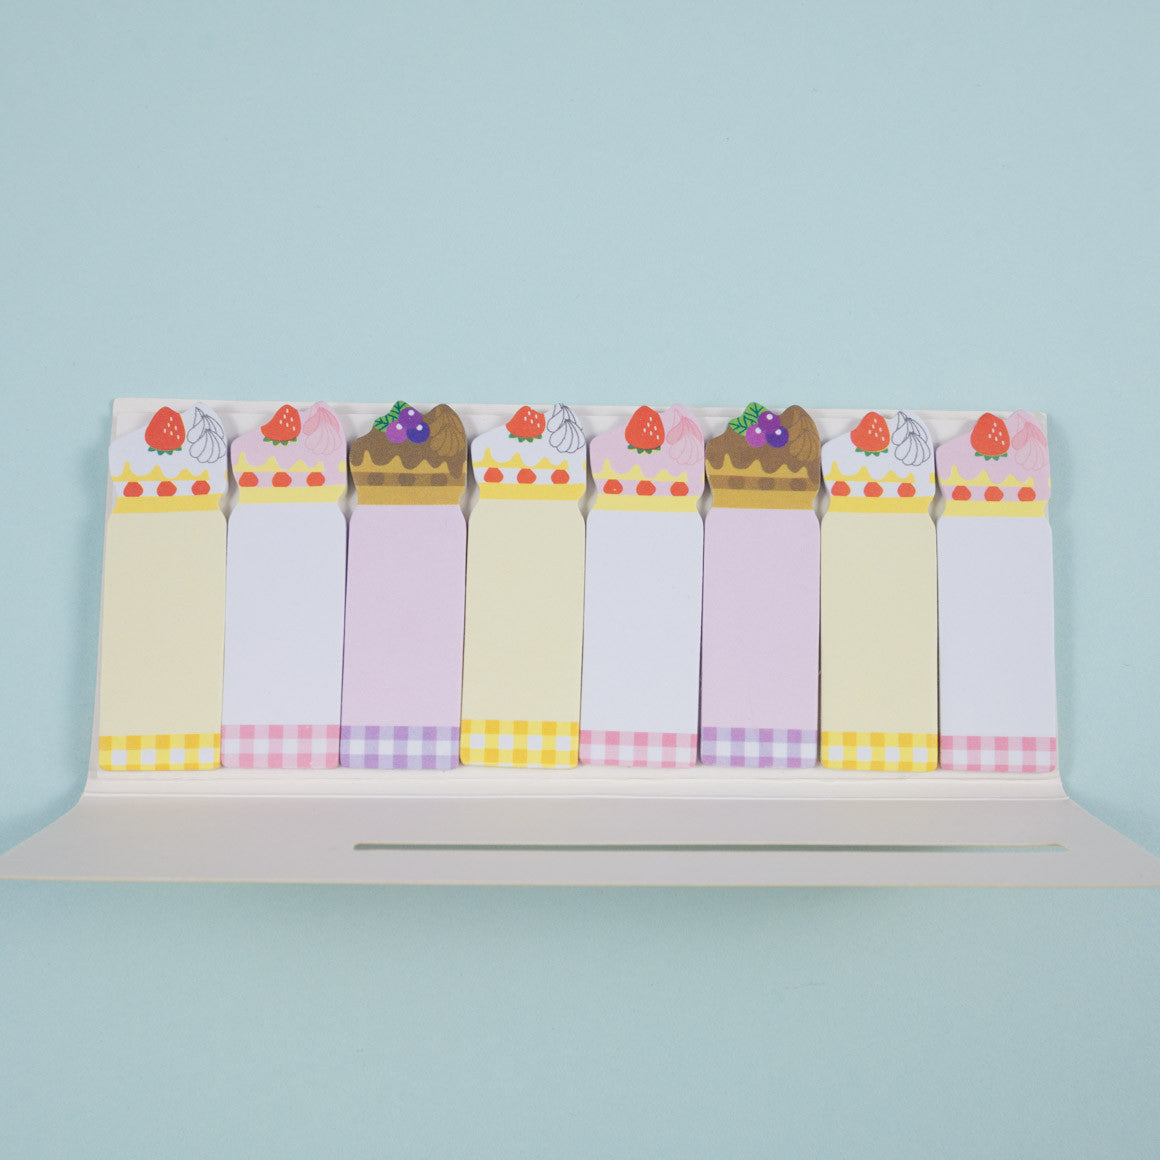 cakes sticky note markers